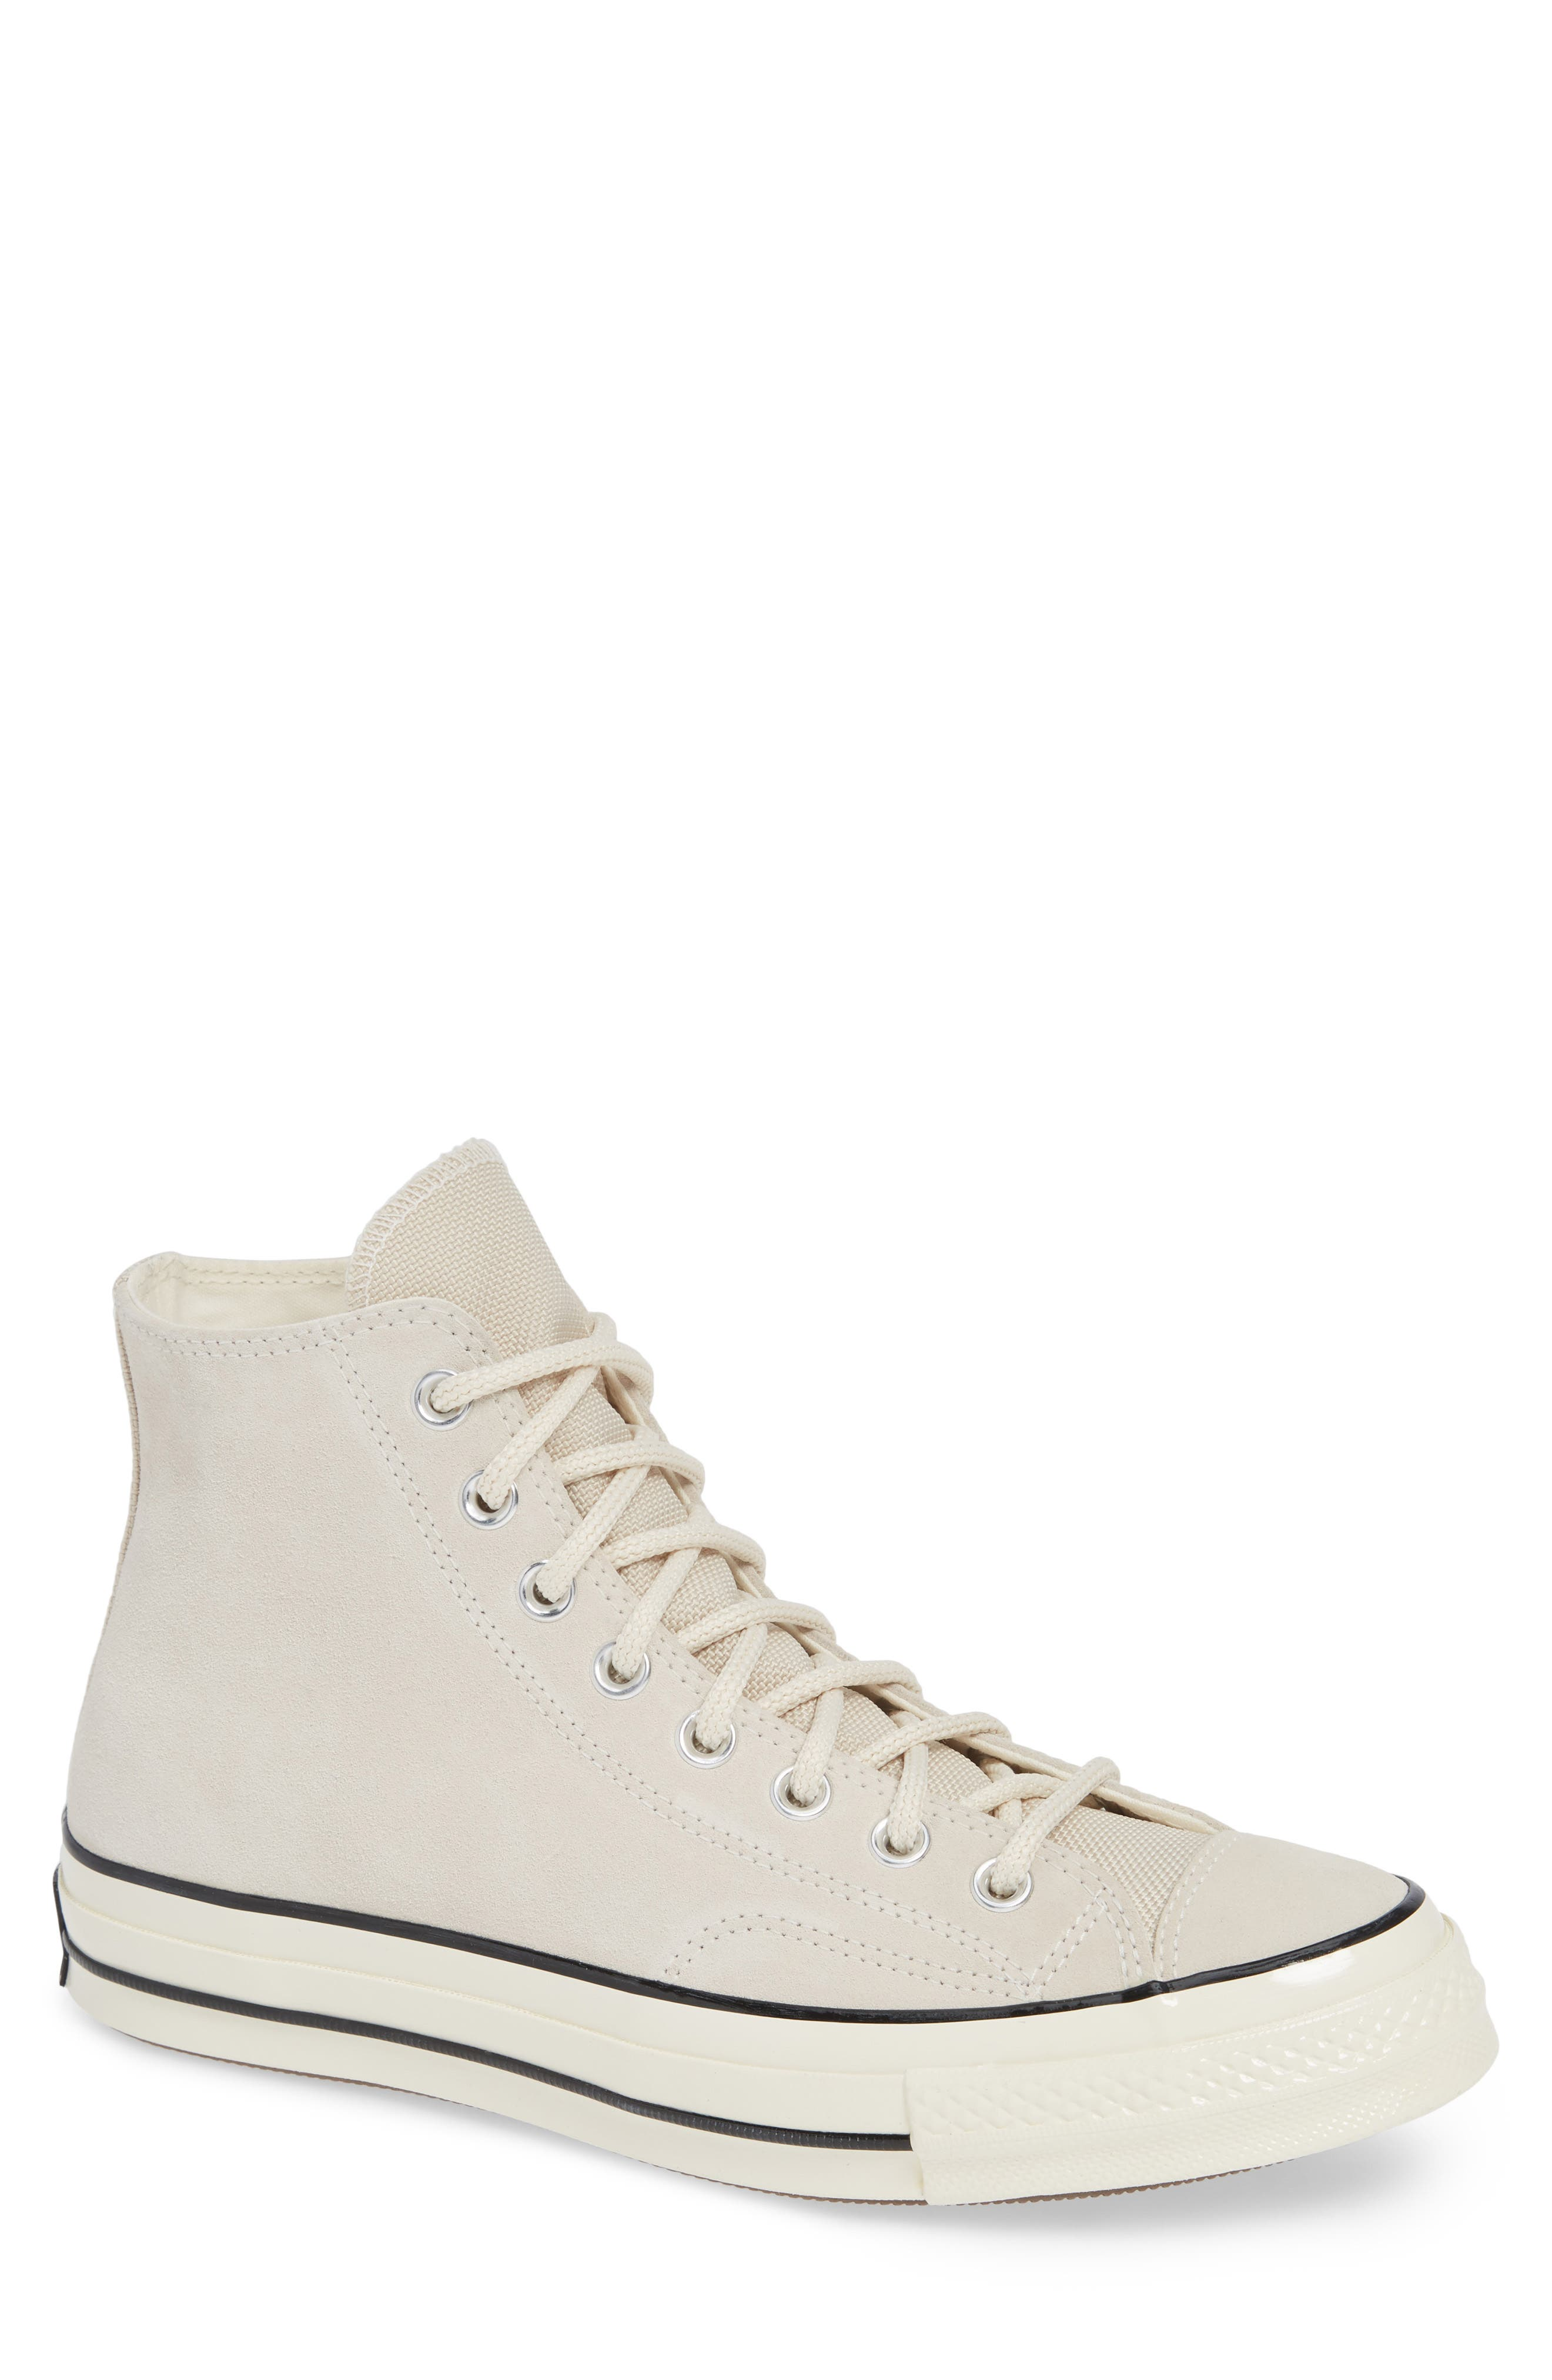 Chuck Taylor<sup>®</sup> All Star<sup>®</sup> 70 Base Camp High Top Sneaker,                         Main,                         color, NATURAL IVORY/BLACK